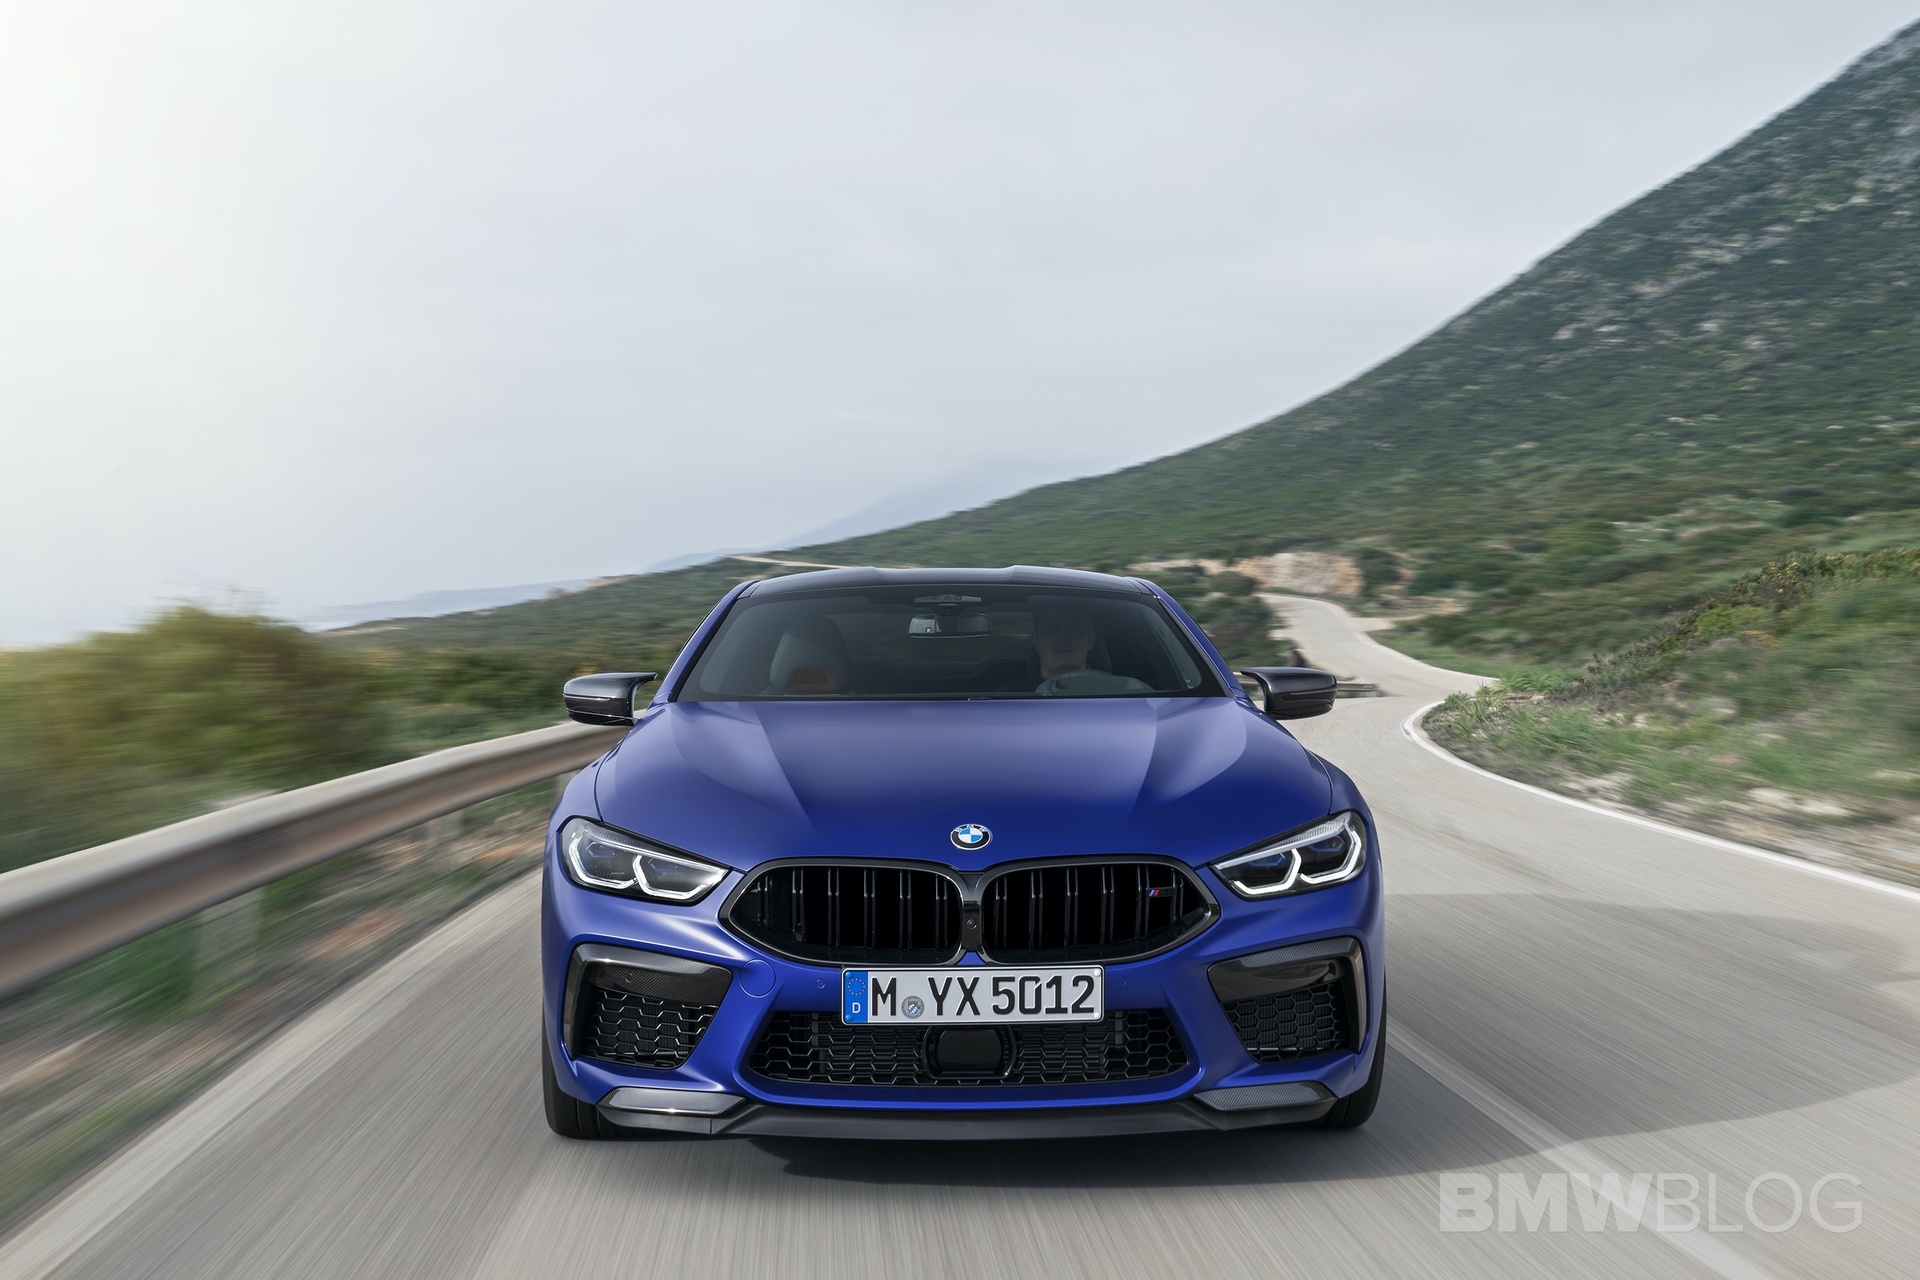 BMW M8 COUPE EXTERIOR design 03